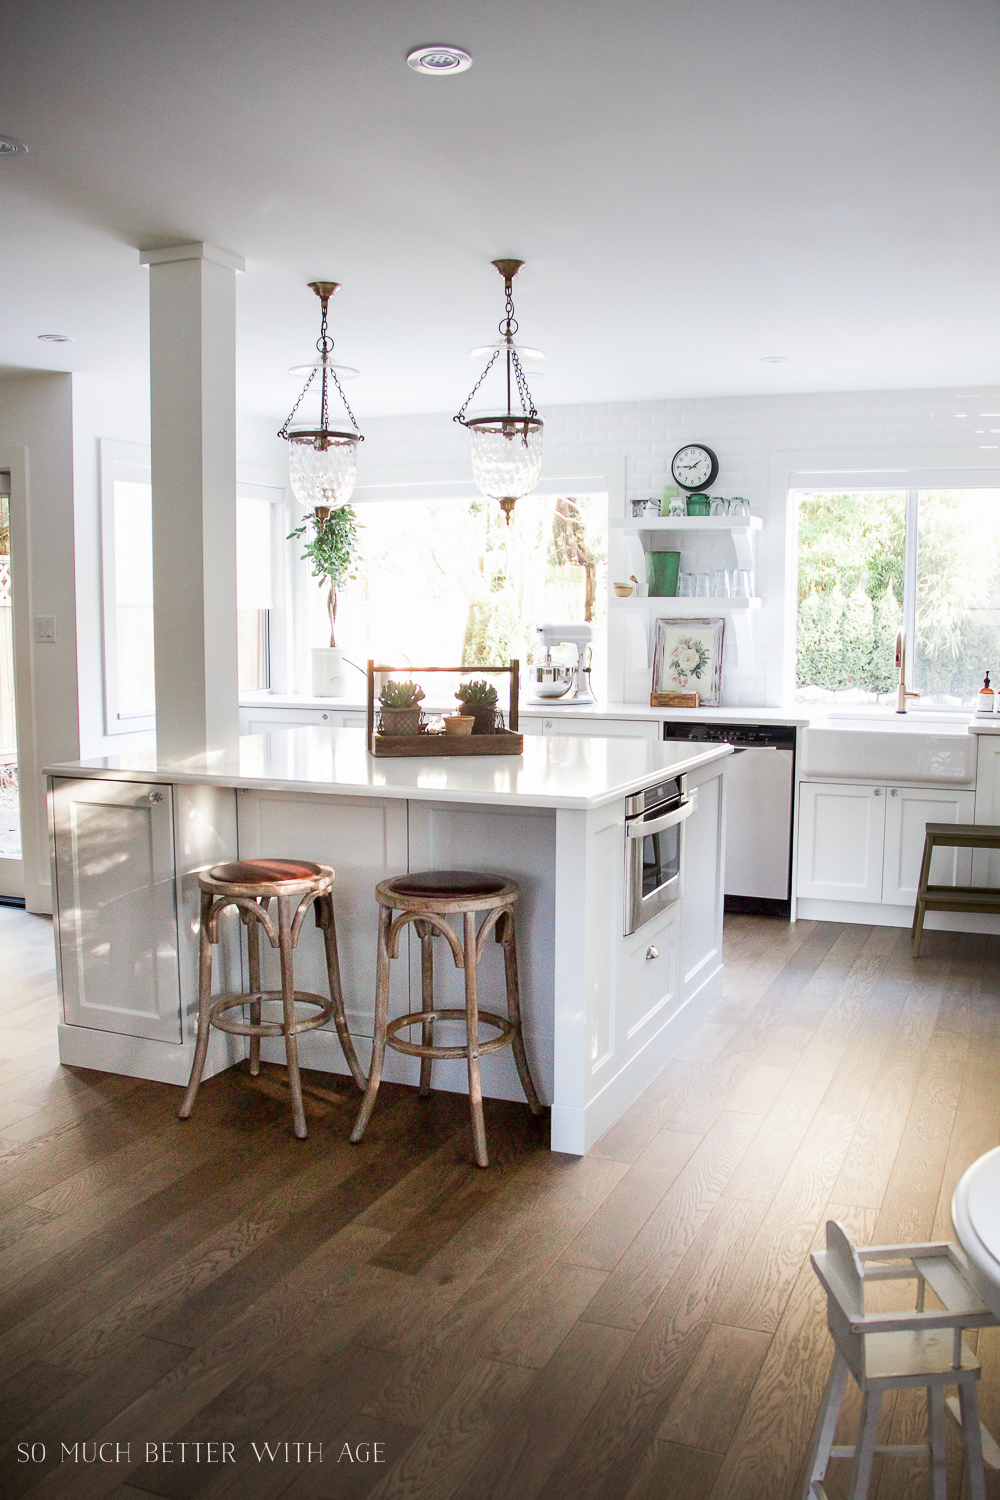 Large white kitchen renovation/ My Big Beautiful Kitchen Renovation - Before and After Photos